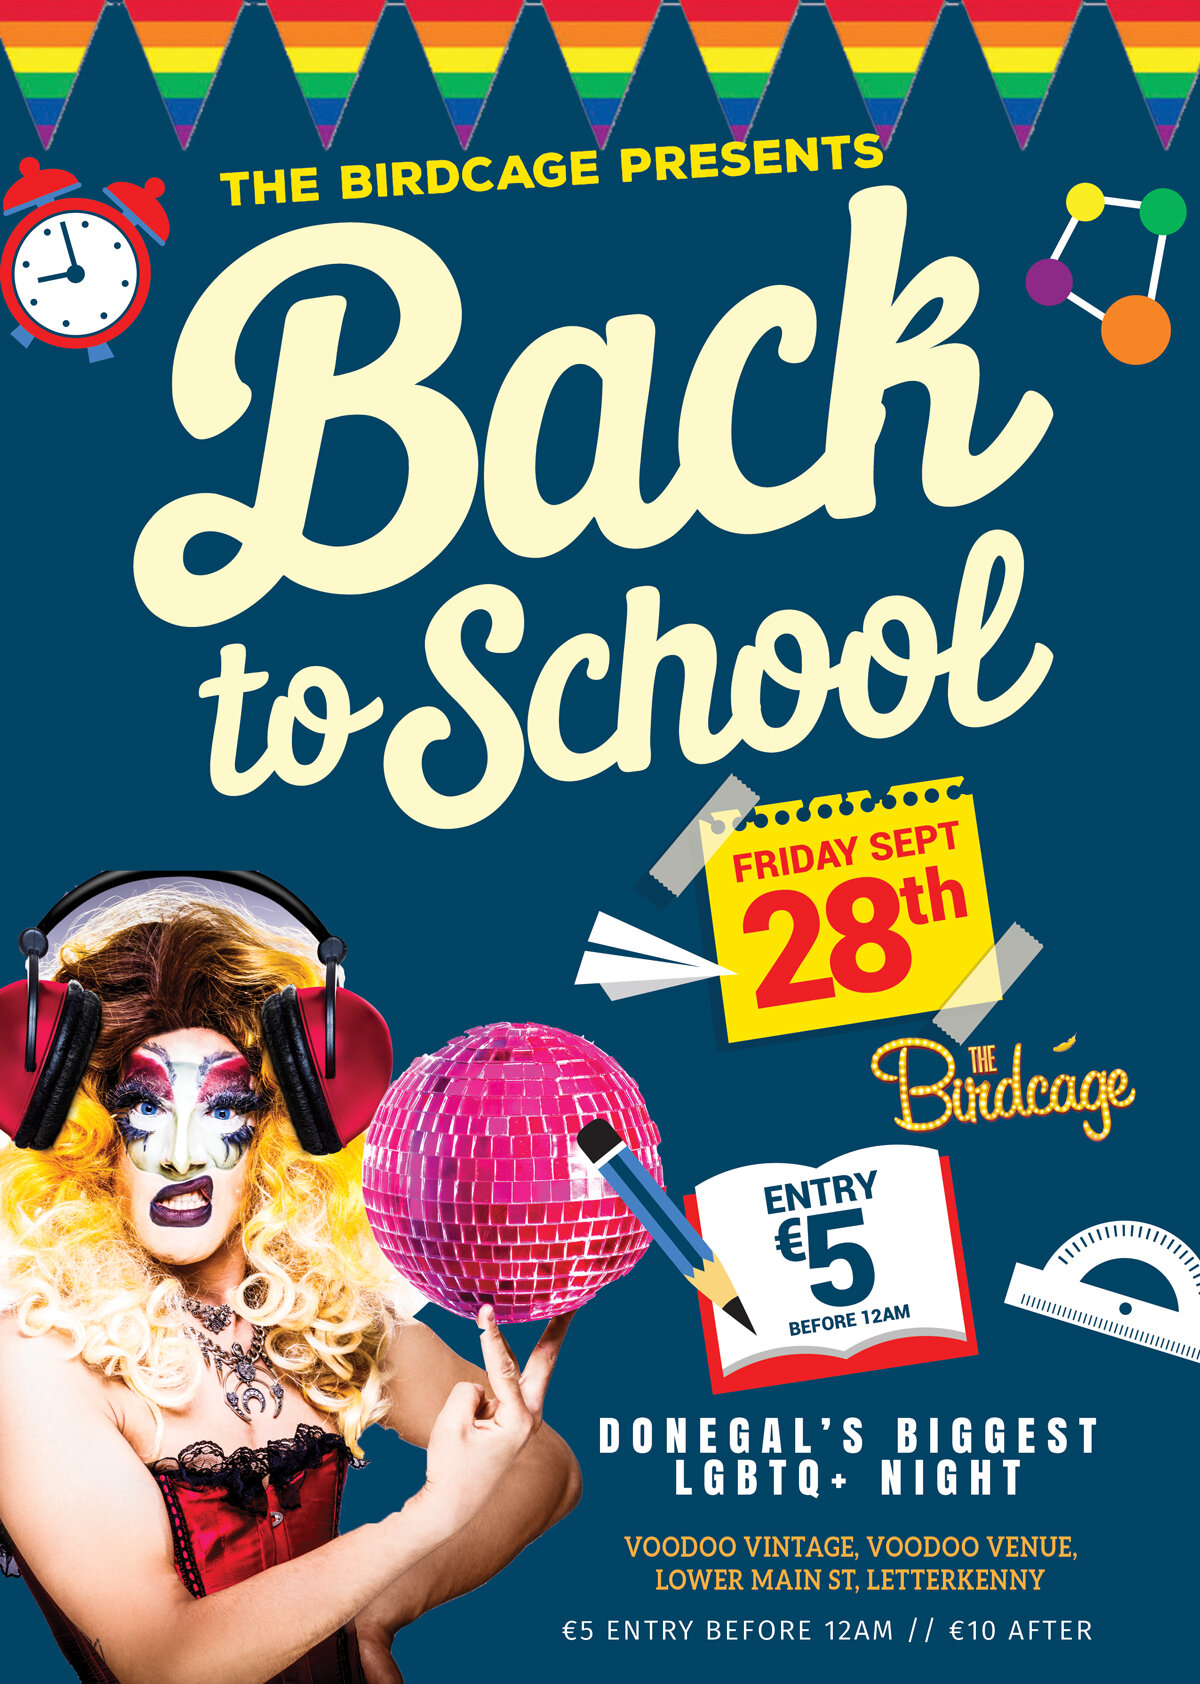 VOODOO---birdcage-lgbt-night---back-to-school-fri-sept-27-2019.jpg